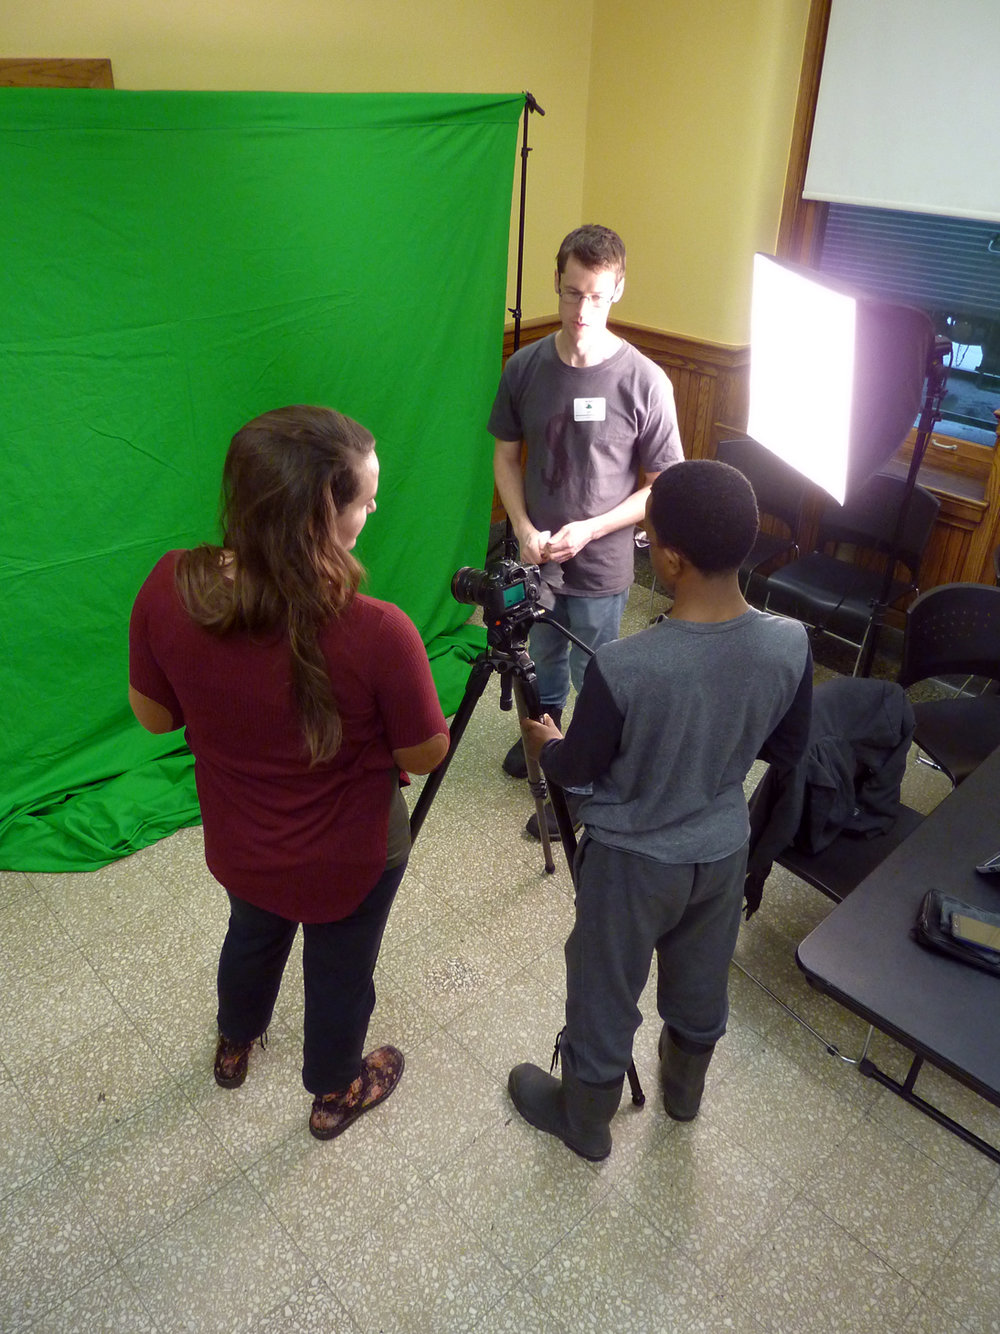 Lauren Travers (left) and Jeff Lassahn (back) showed green screen animation and lighting to students at the Live Action Filmmaking workshops.